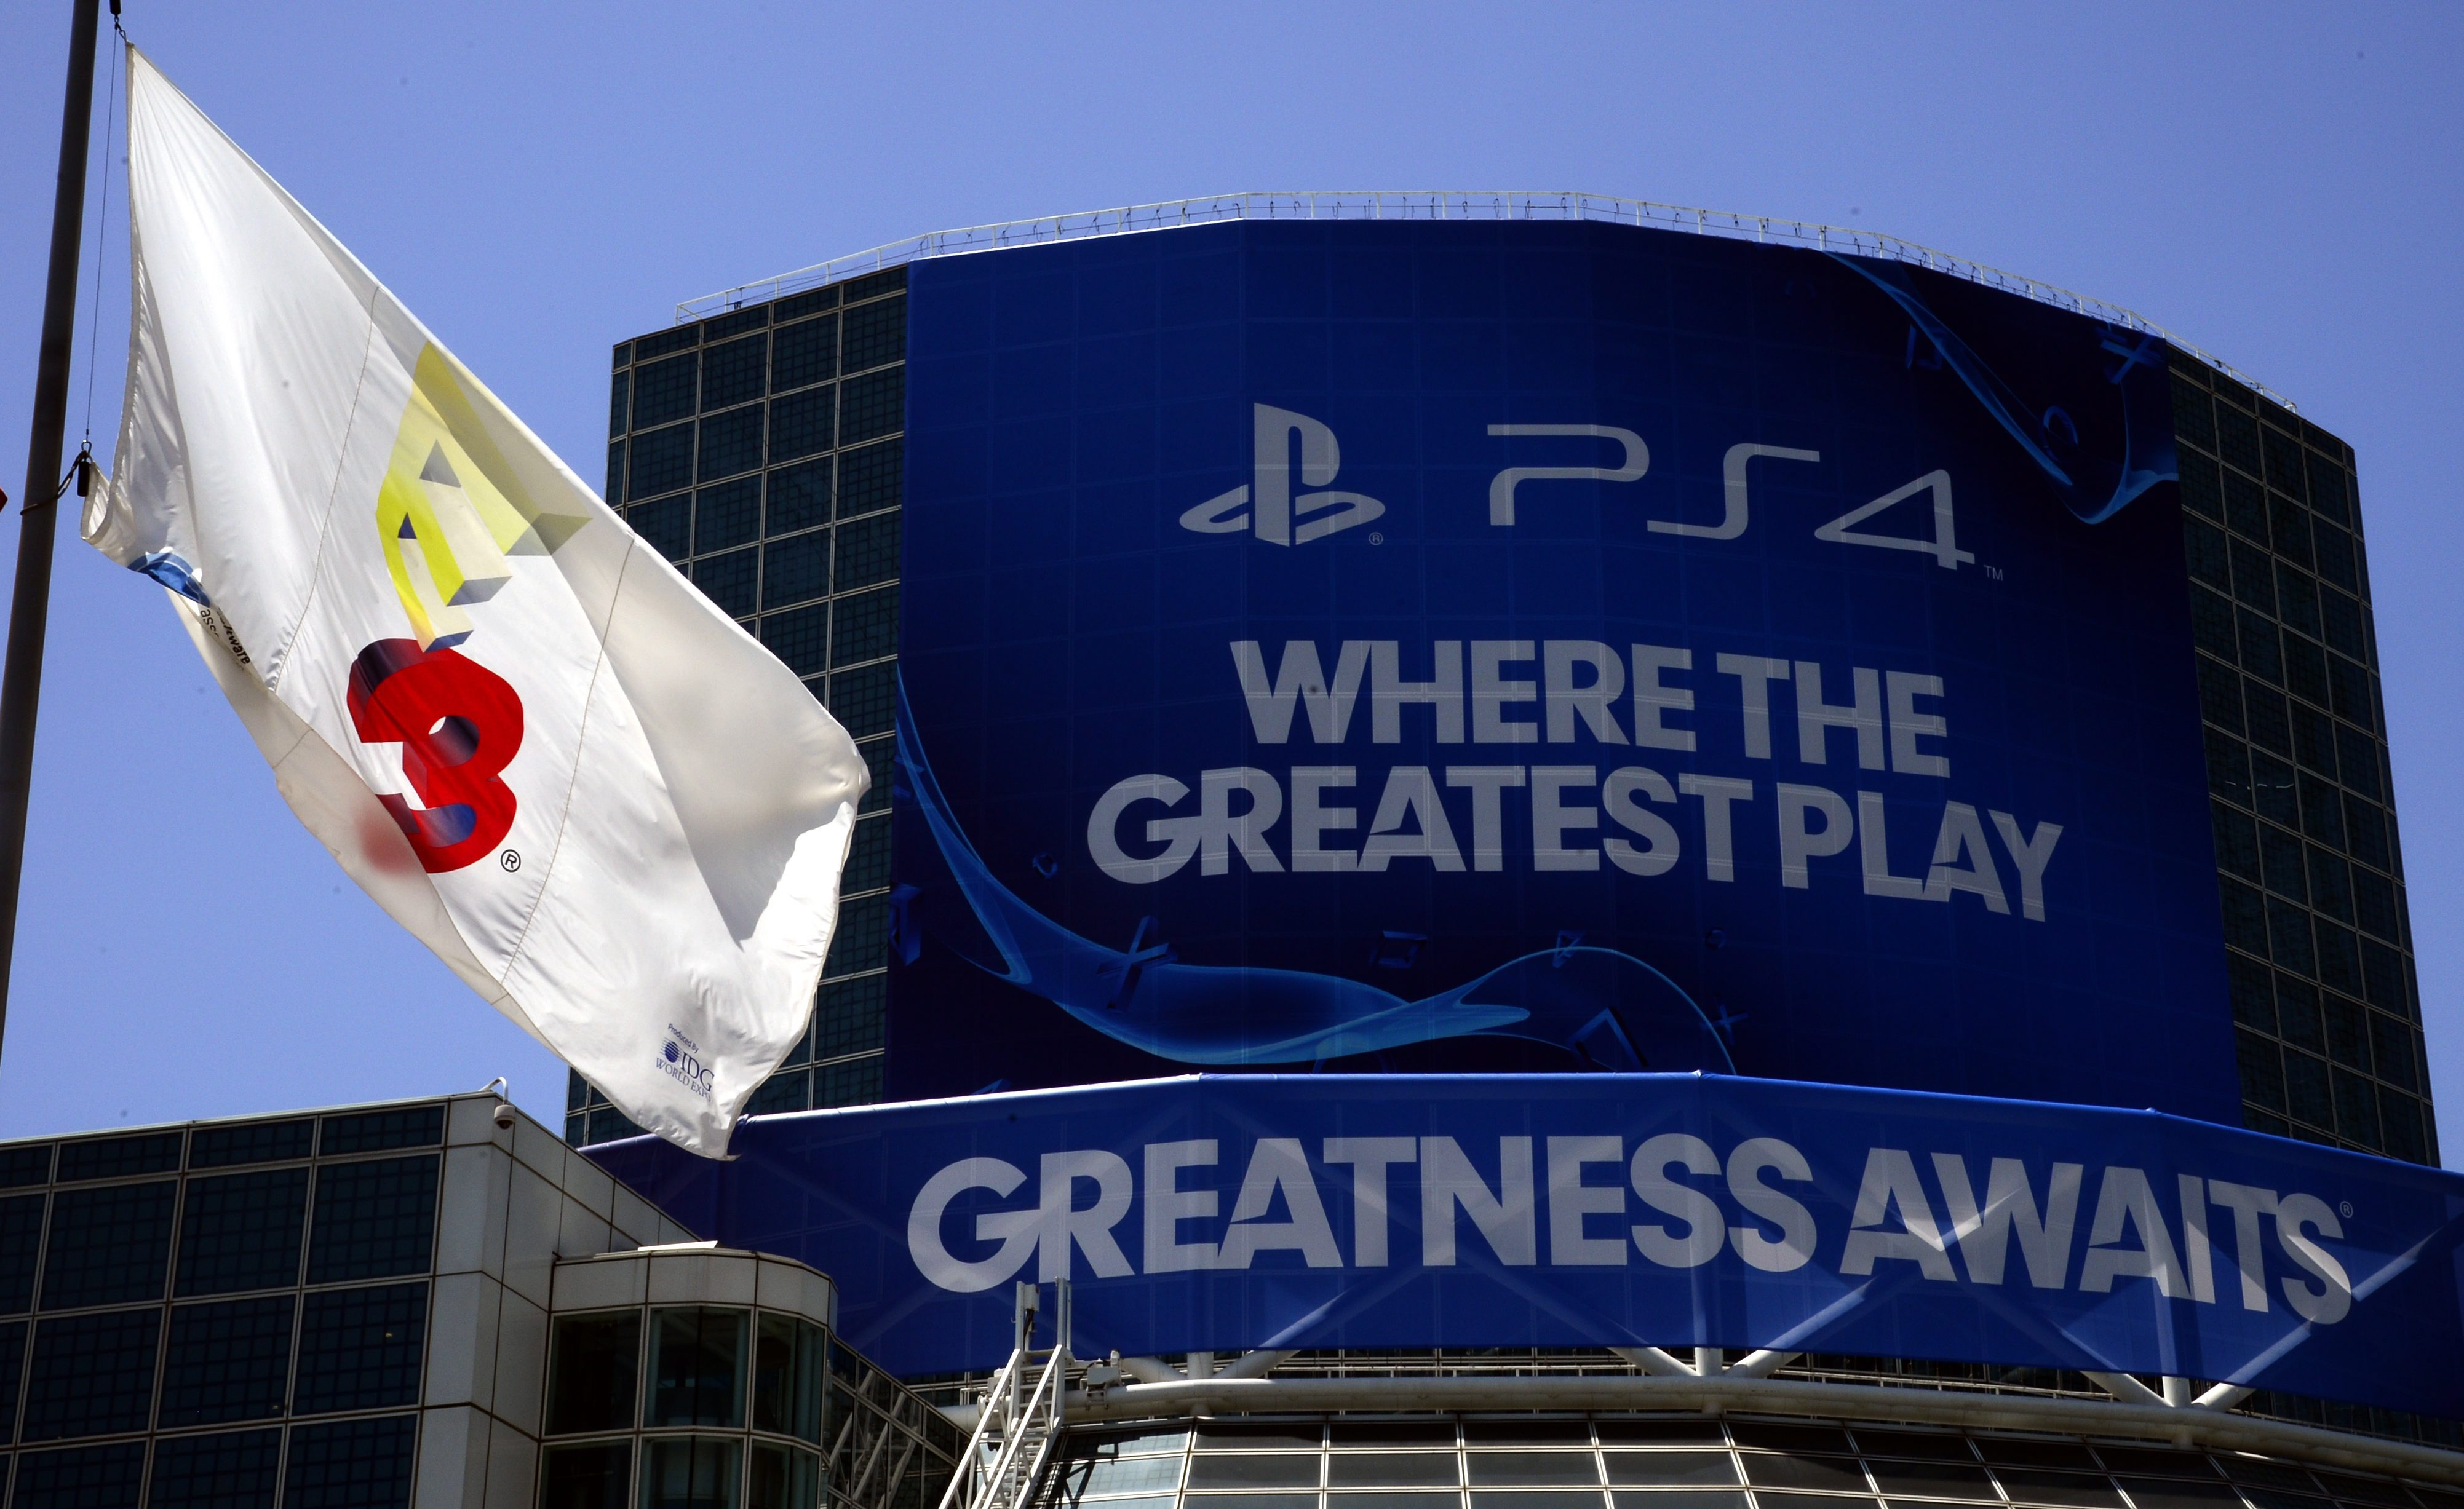 epa04247259 The E3 flag flies over the Convention Center 09 June 2014 where the E3 (Electronic Entertainment Expo) will get underway in Los Angeles, California, USA, 10-12 June 2014. The E3 expo introduces new games and gaming devices and is an anticipated annual event among gaming enthusiasts and marketers. EPA/MICHAEL NELSON ** Usable by LA, CT and MoD ONLY **